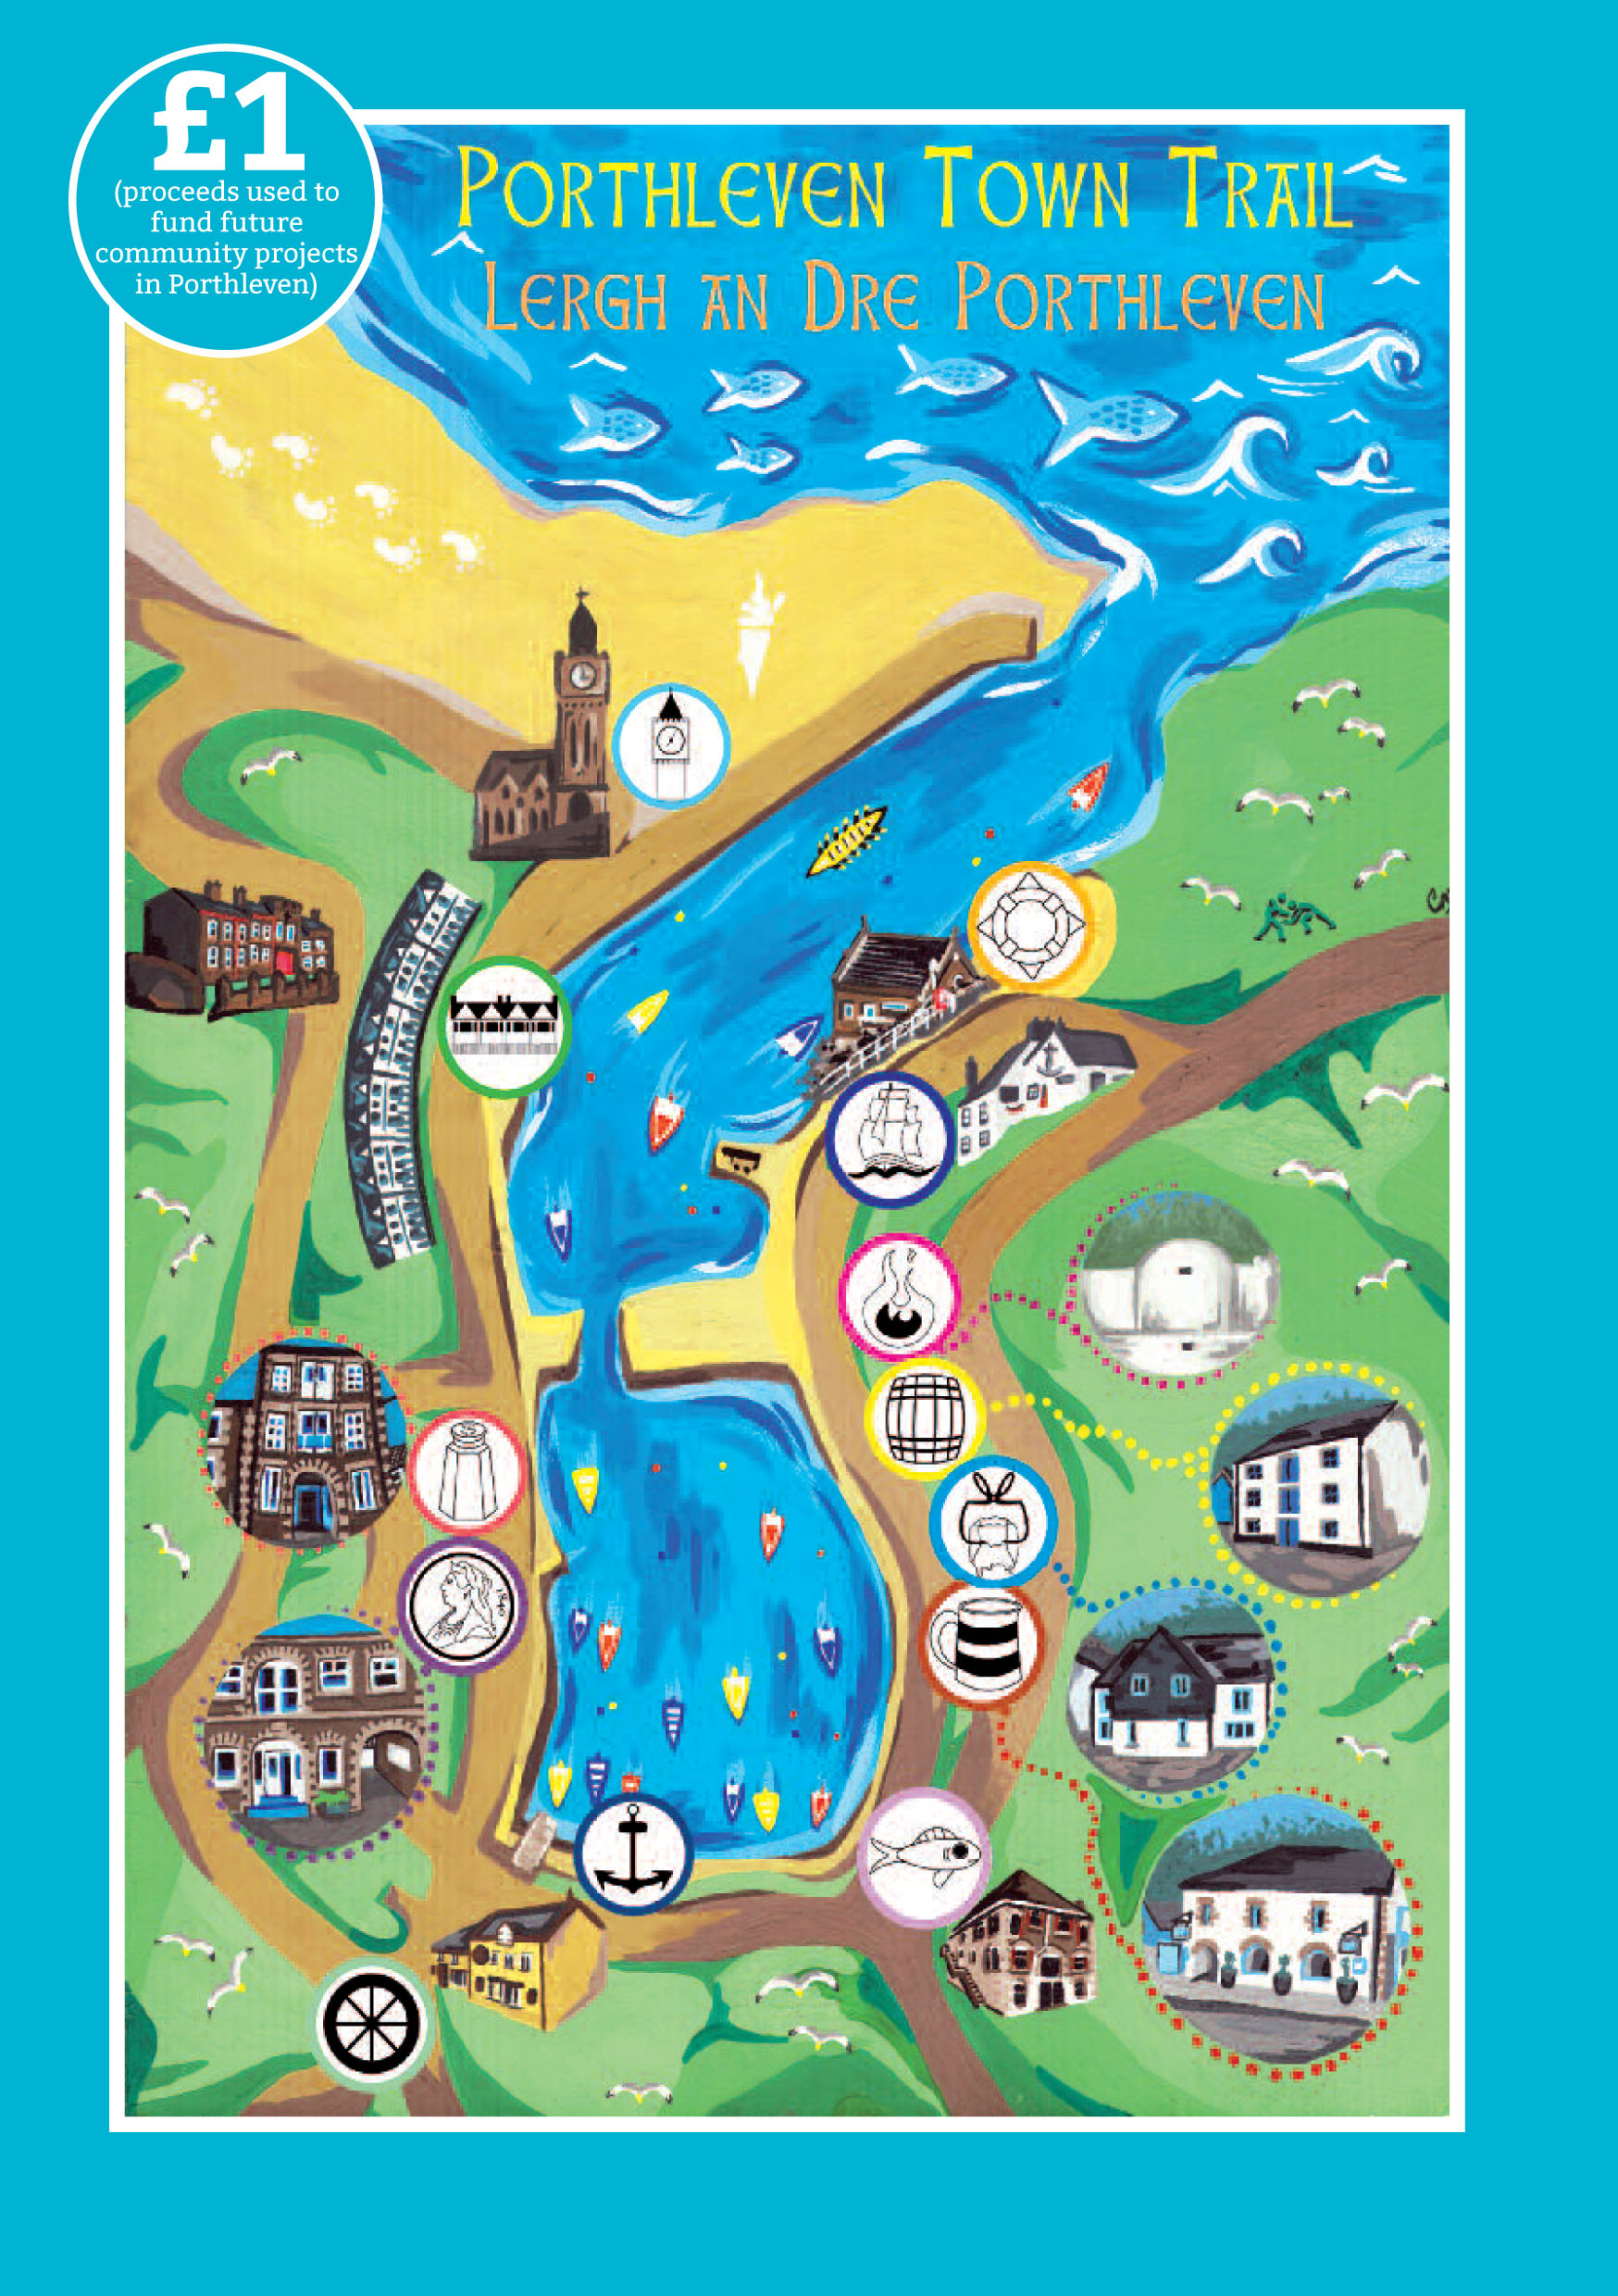 Porthleven Town Trail front page